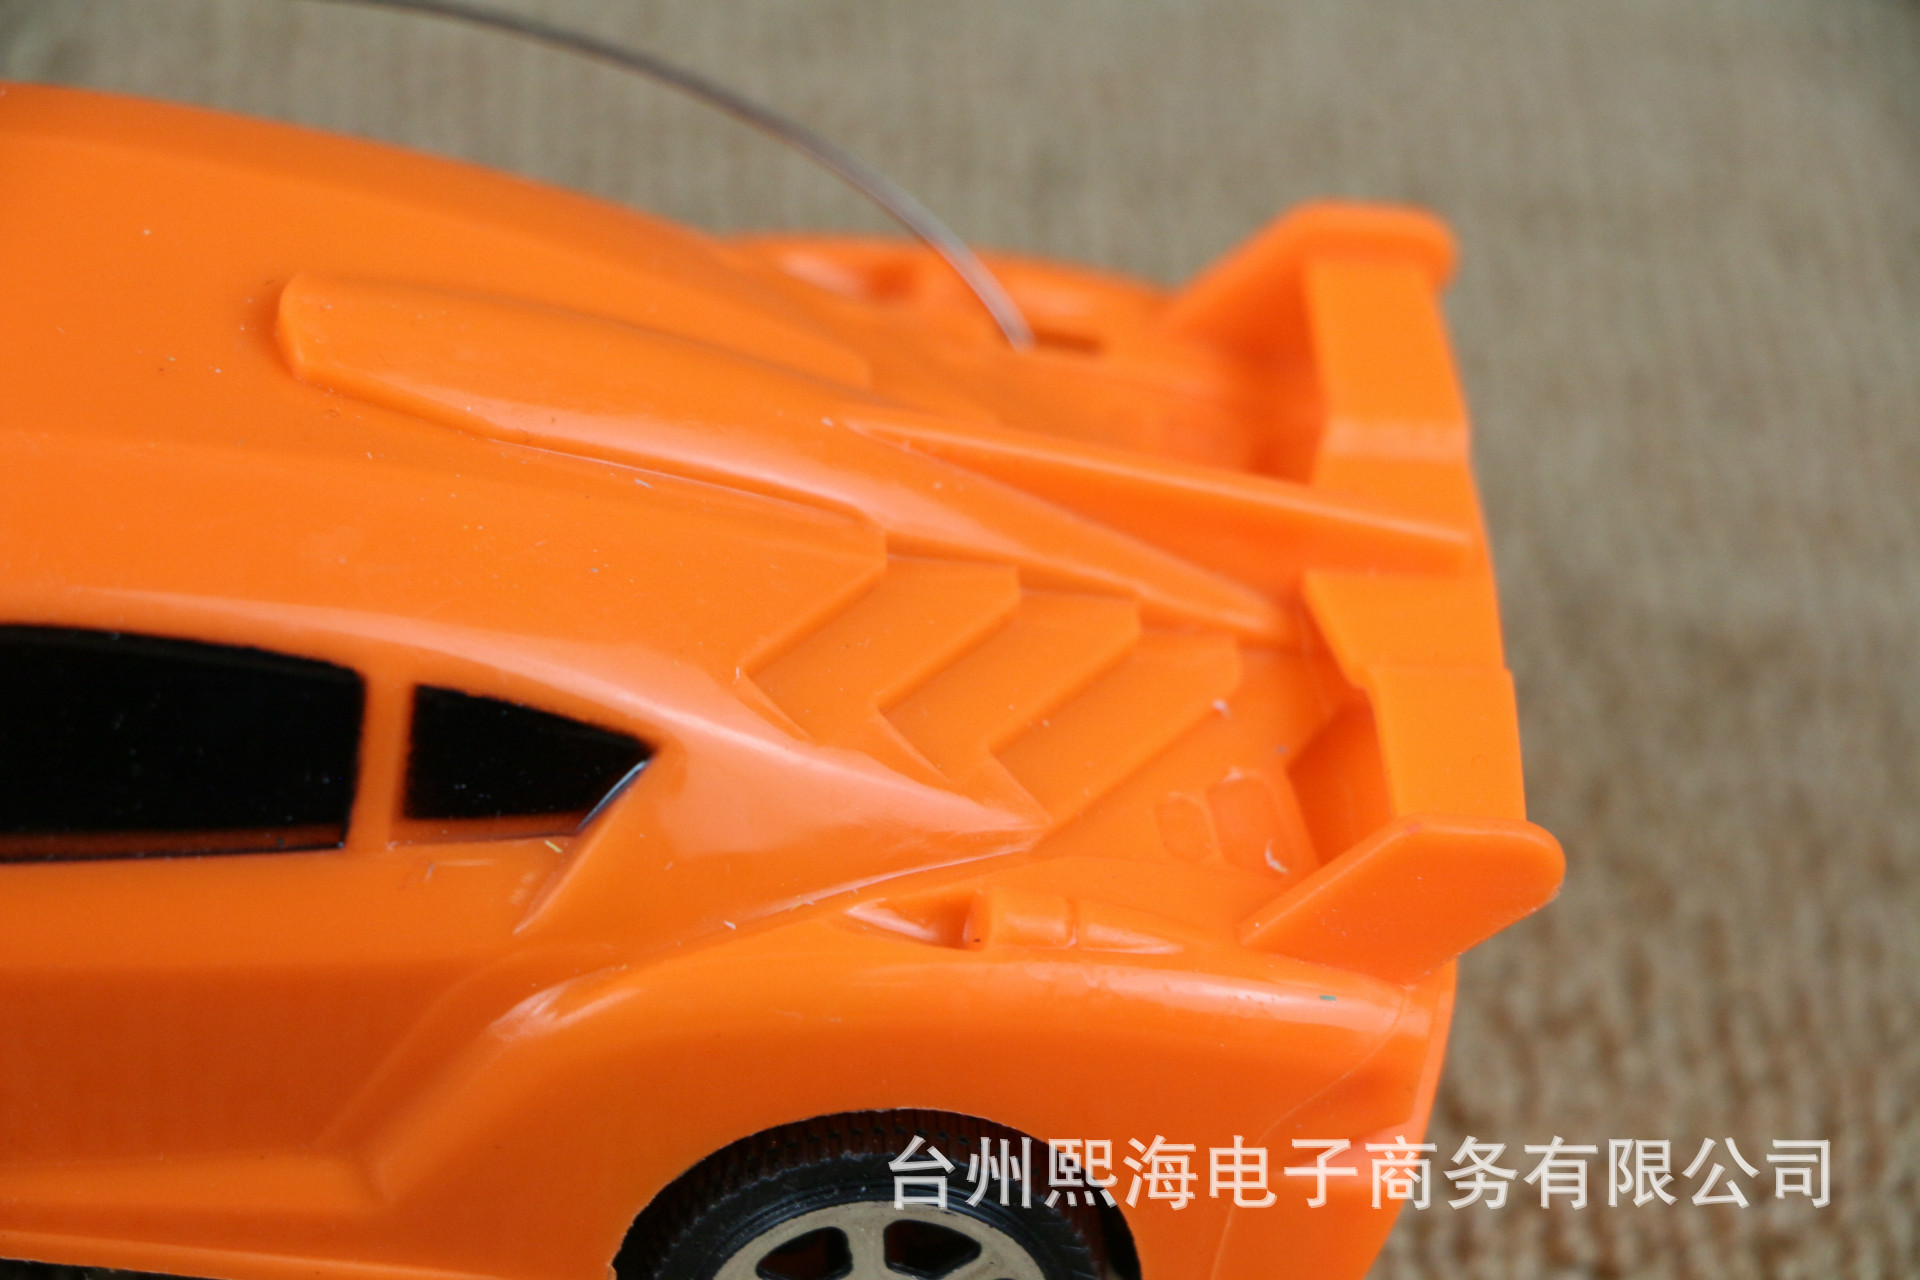 Foreign Trade Export Remote Control Racing Car Sports Car Simulation Car Model GIRL'S And BOY'S CHILDREN'S Toy Stall Hot Selling